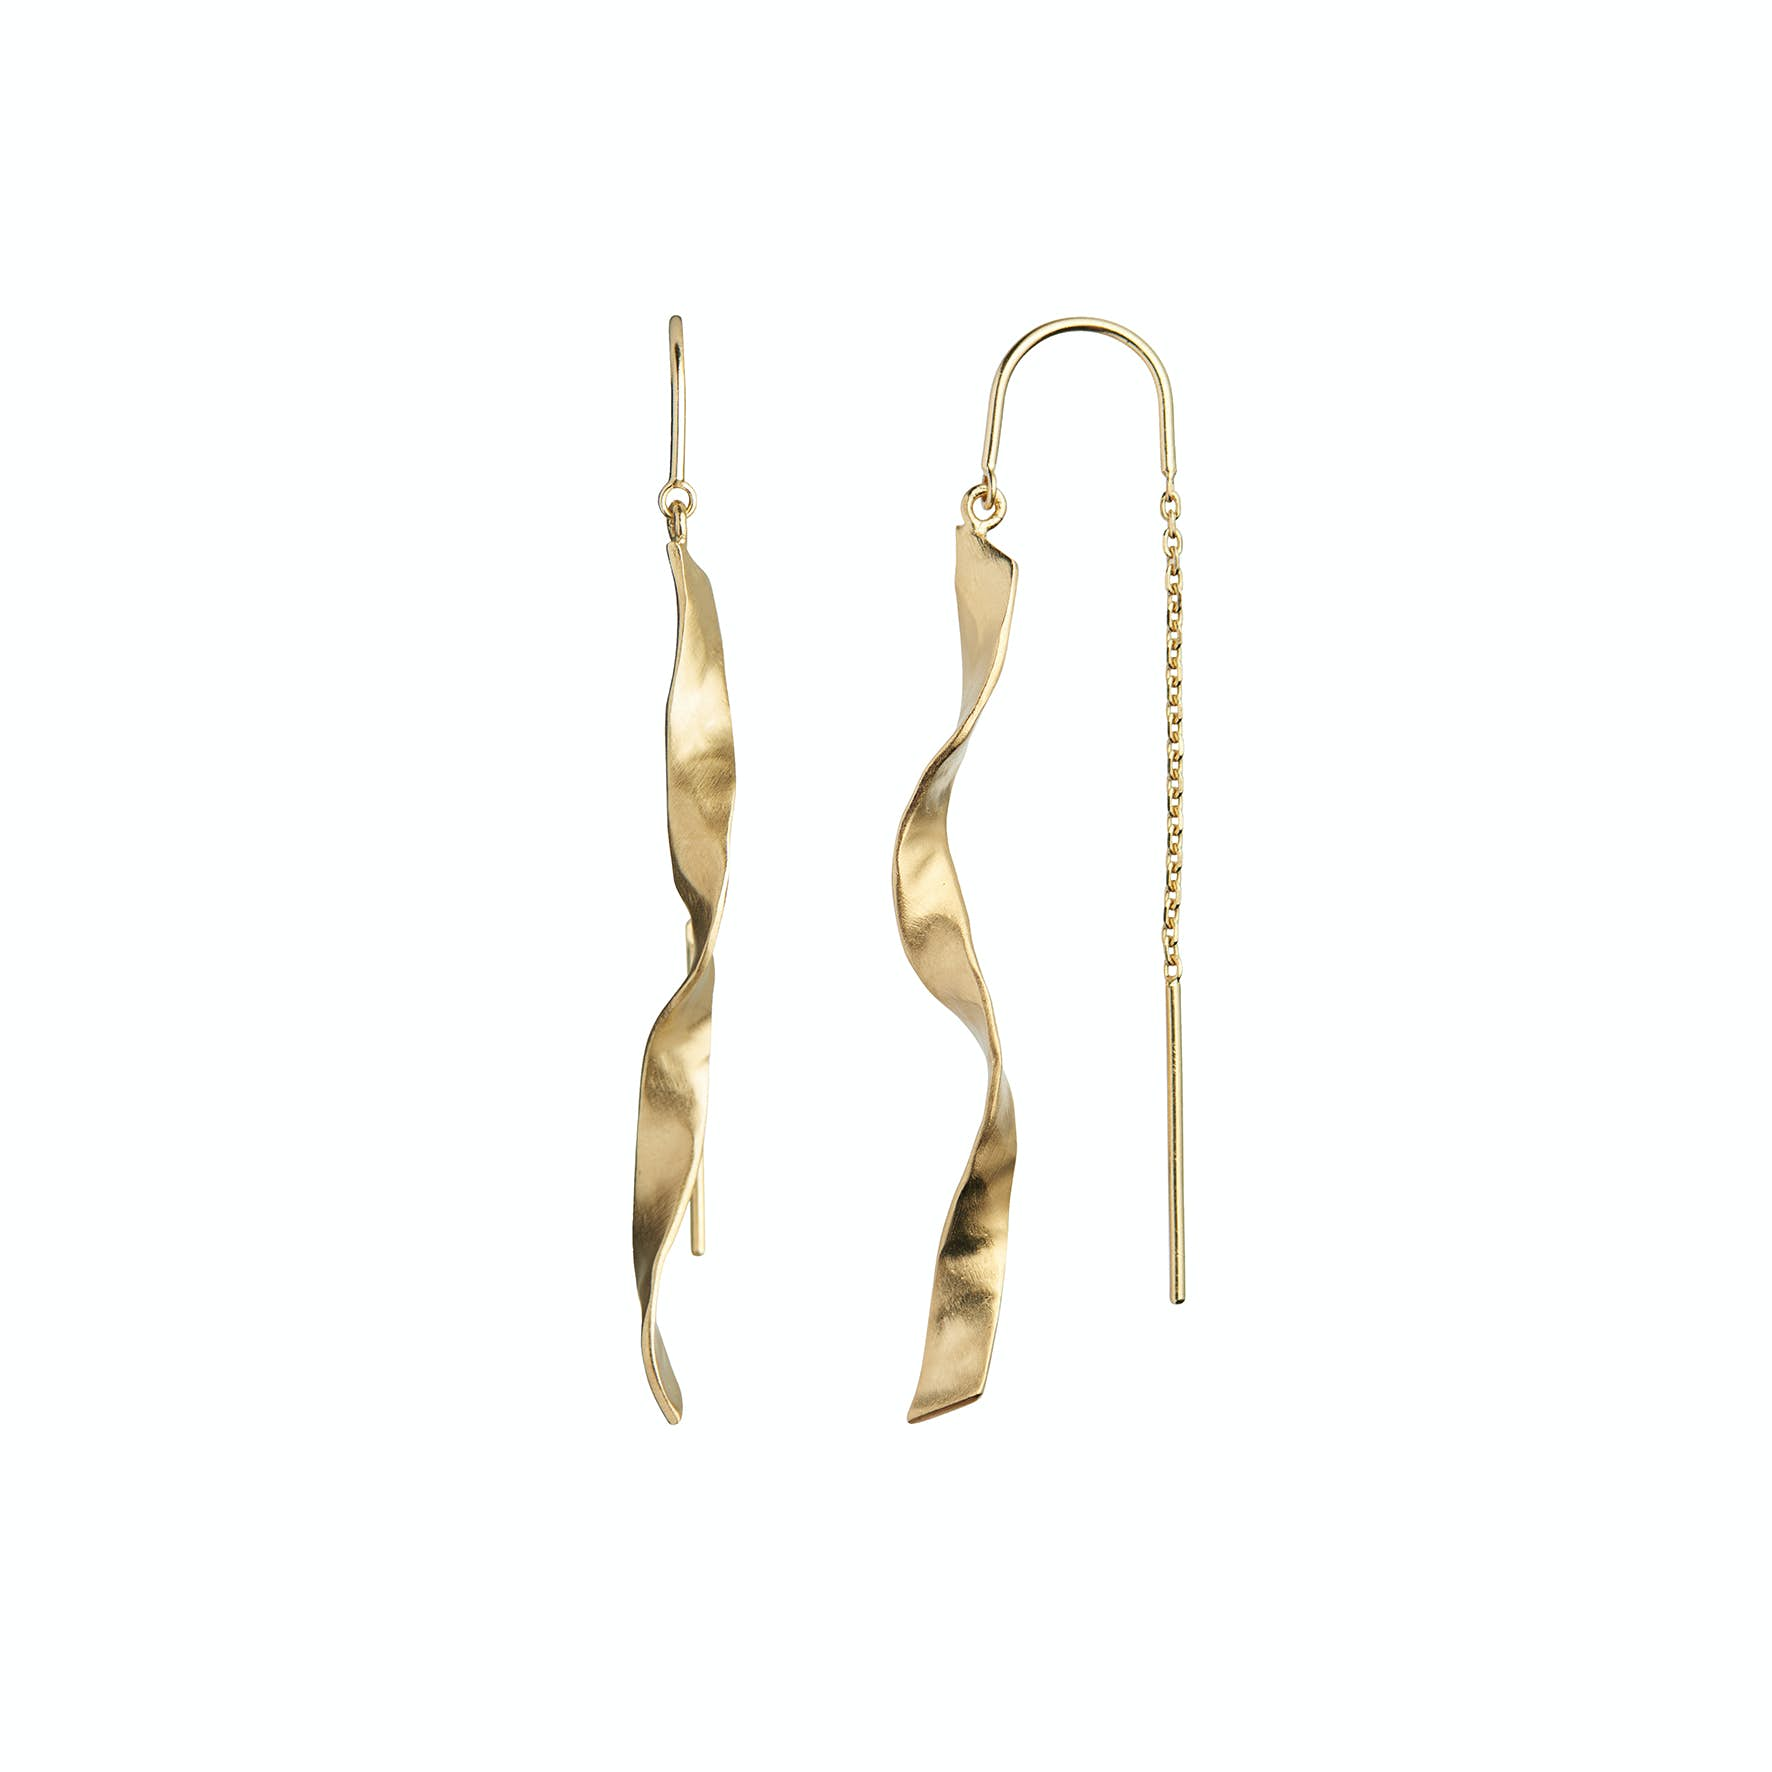 Long Twisted Hammered Earchain With Chain från STINE A Jewelry i Förgyllt-Silver Sterling 925